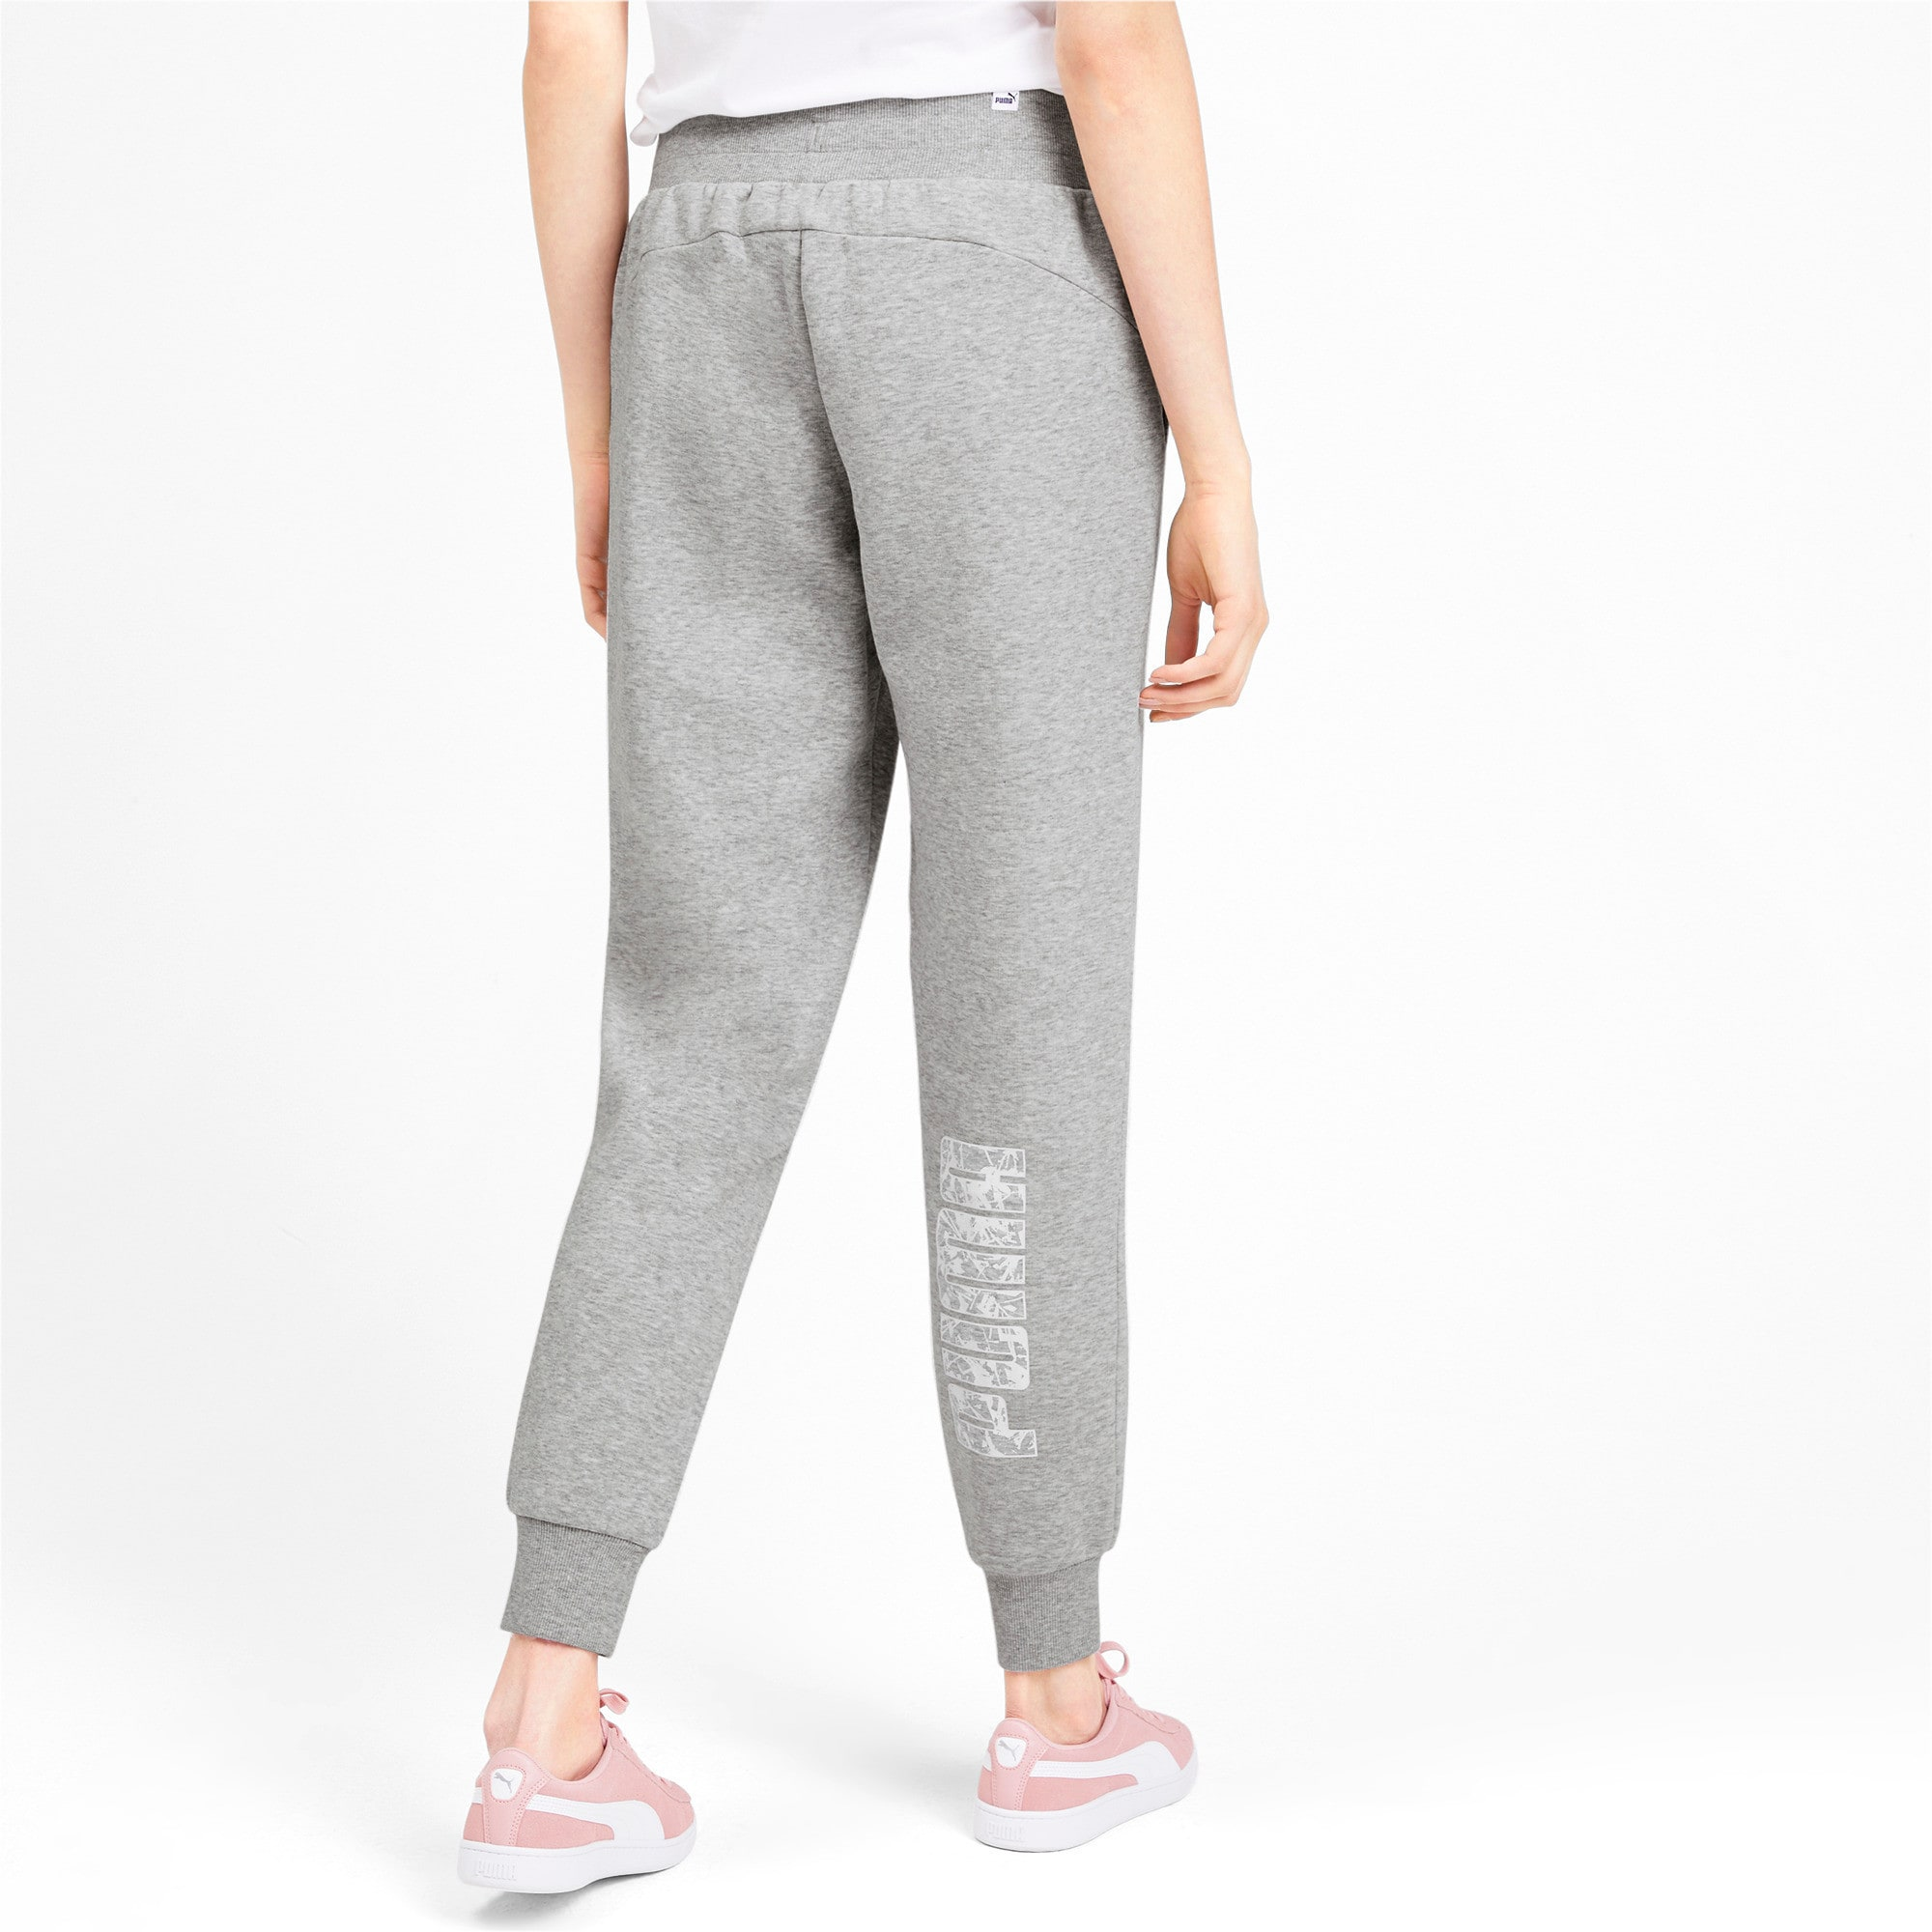 Thumbnail 3 of Knitted Women's Pants, Light Gray Heather, medium-IND